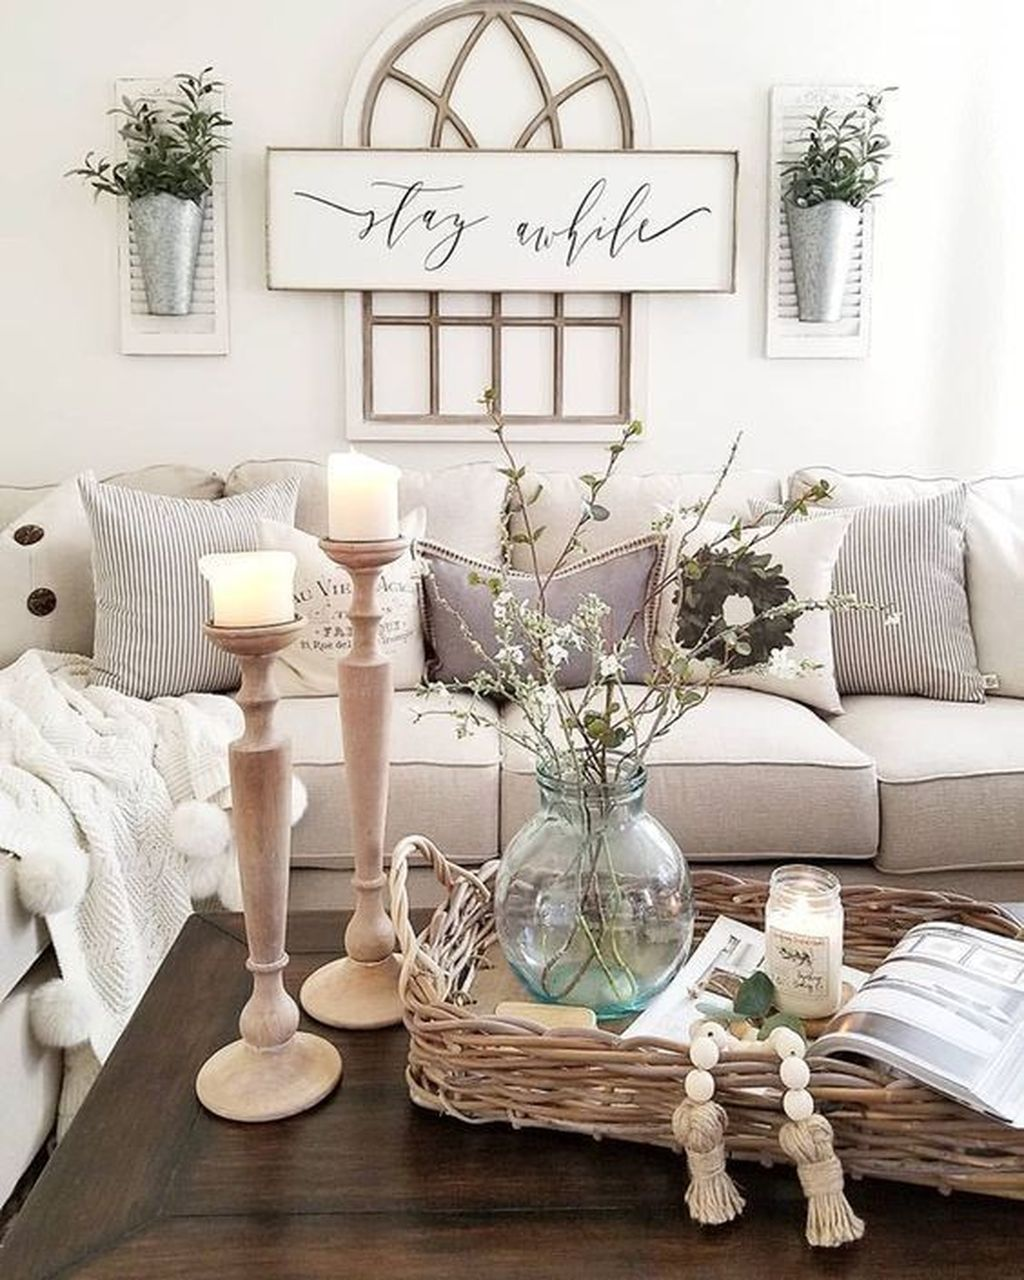 Admirable Farmhouse Living Room Decor Ideas 16